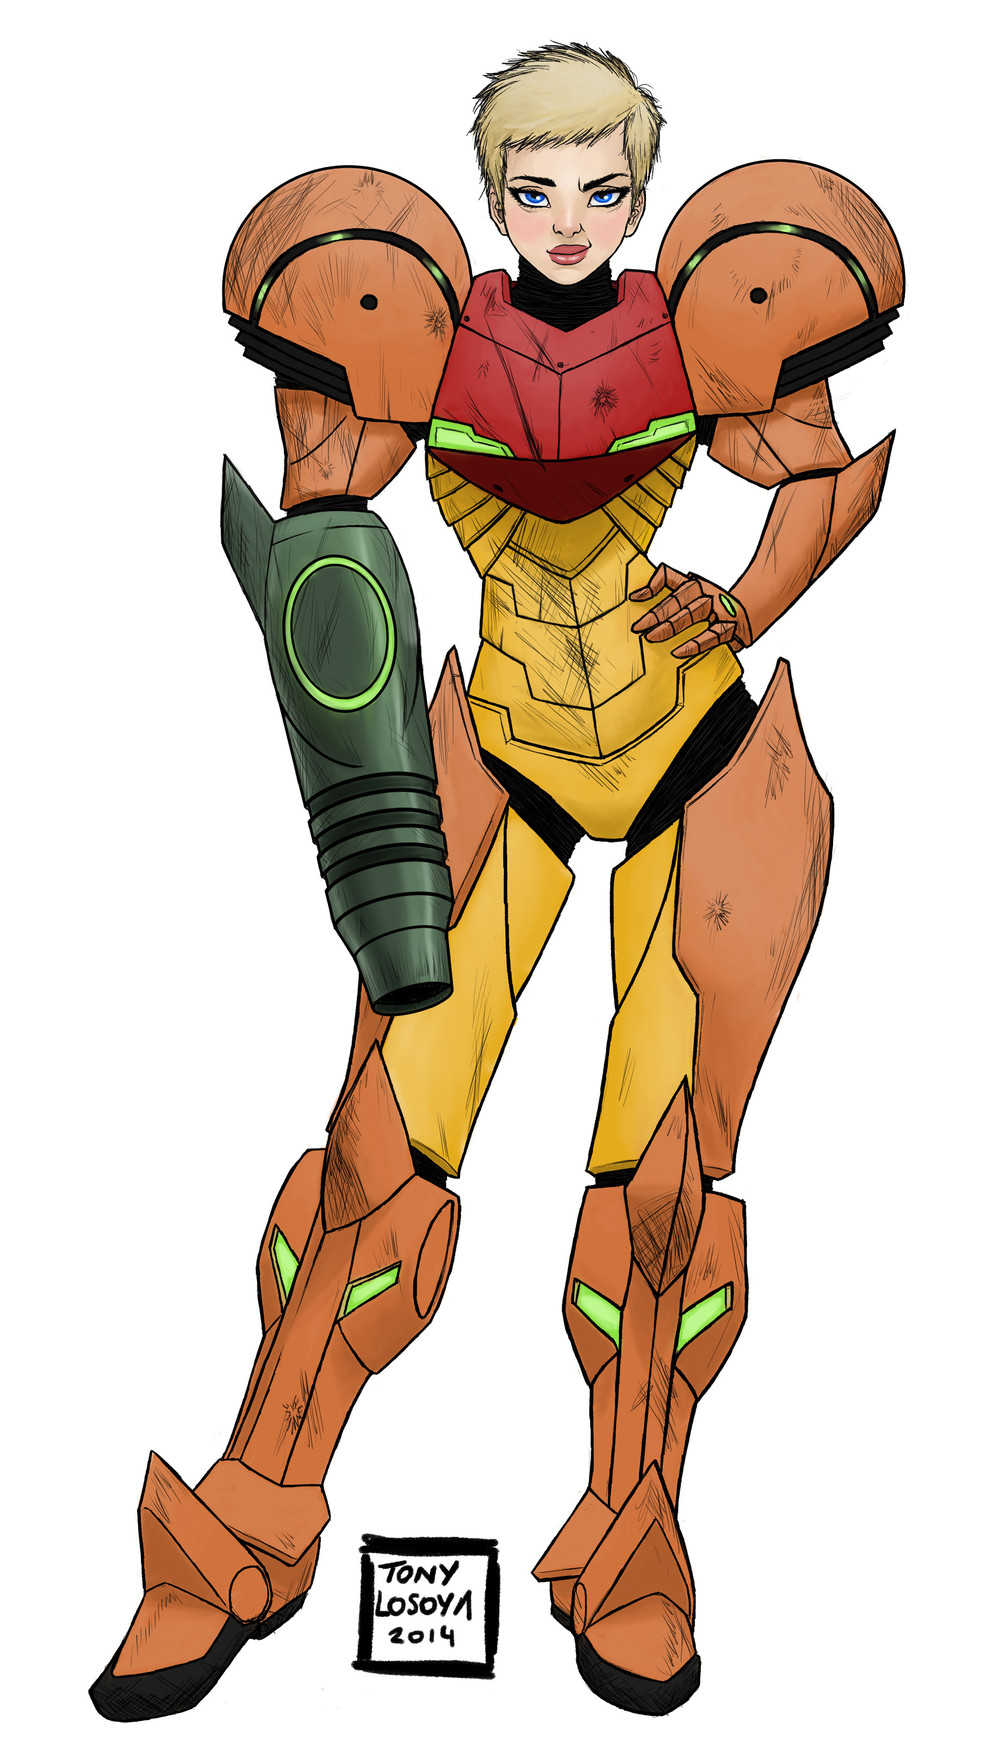 Samus Aran by Tony Losoya